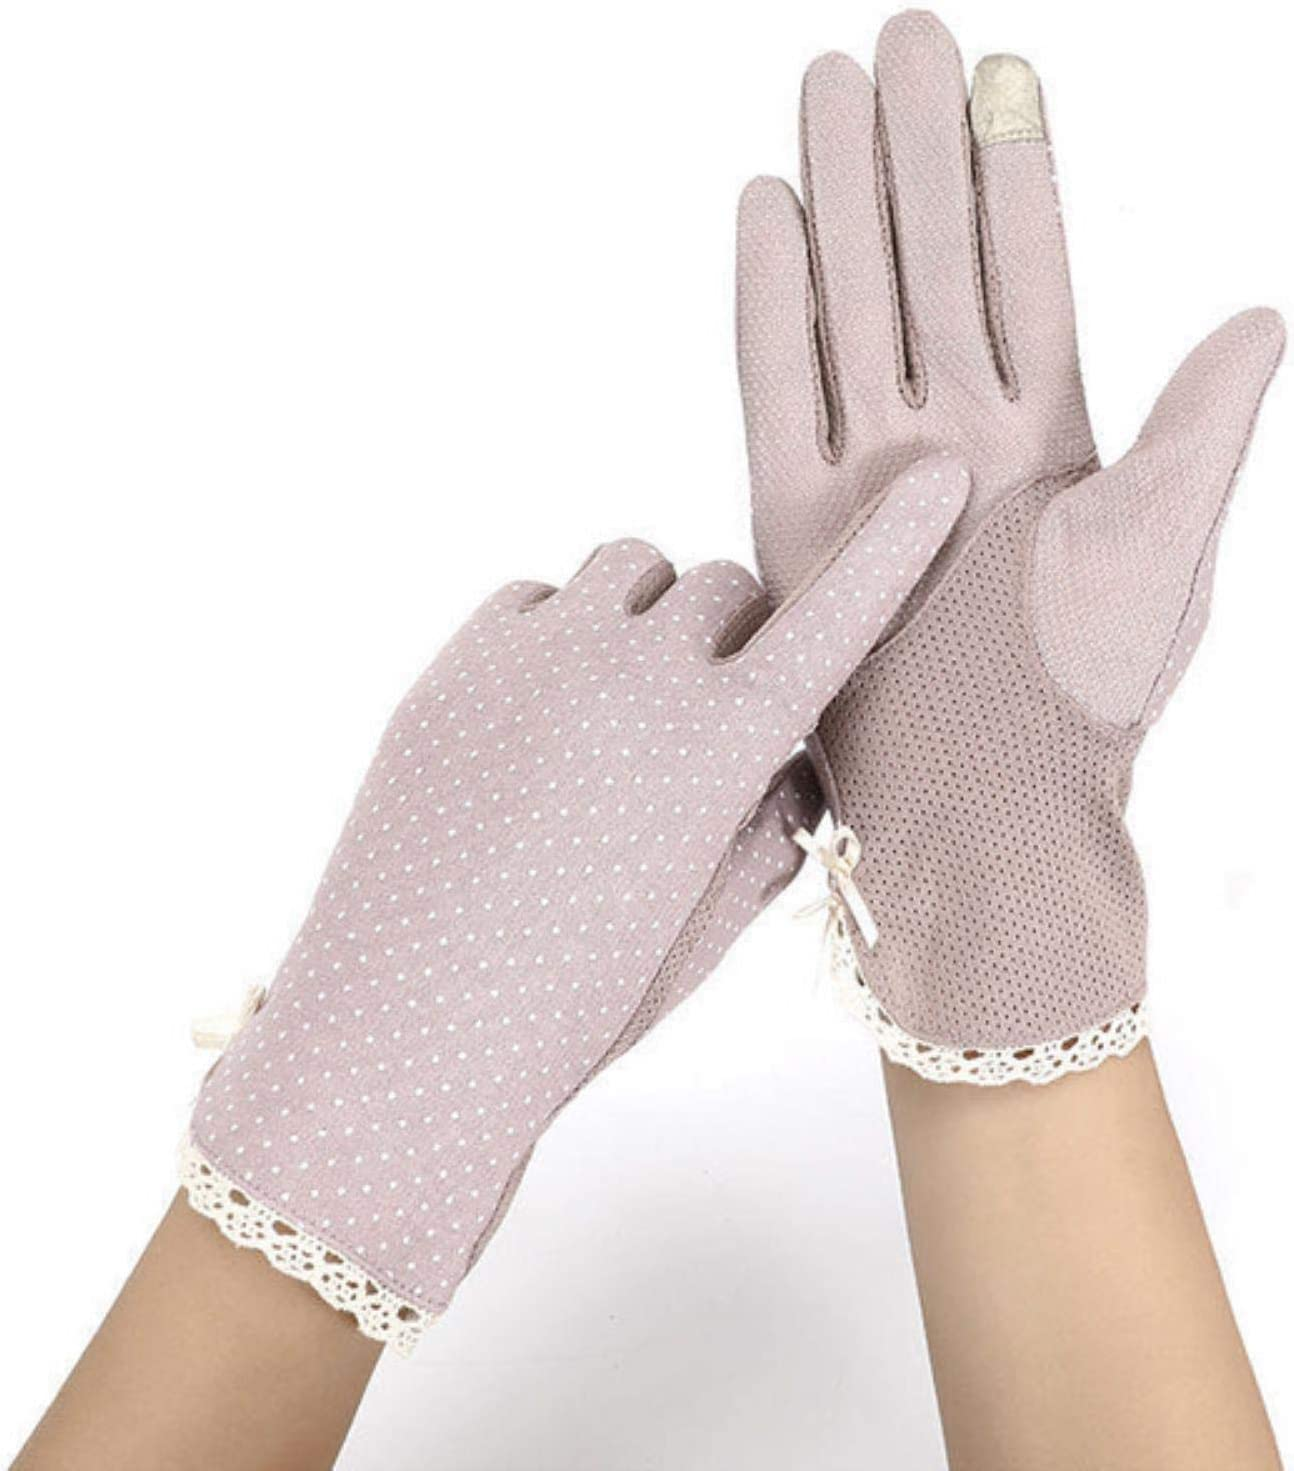 Spring Summer Driving Gloves Women Touch Screen Thin Cotton Gloves Lace UV Sun Against Non Slip Riding Glove